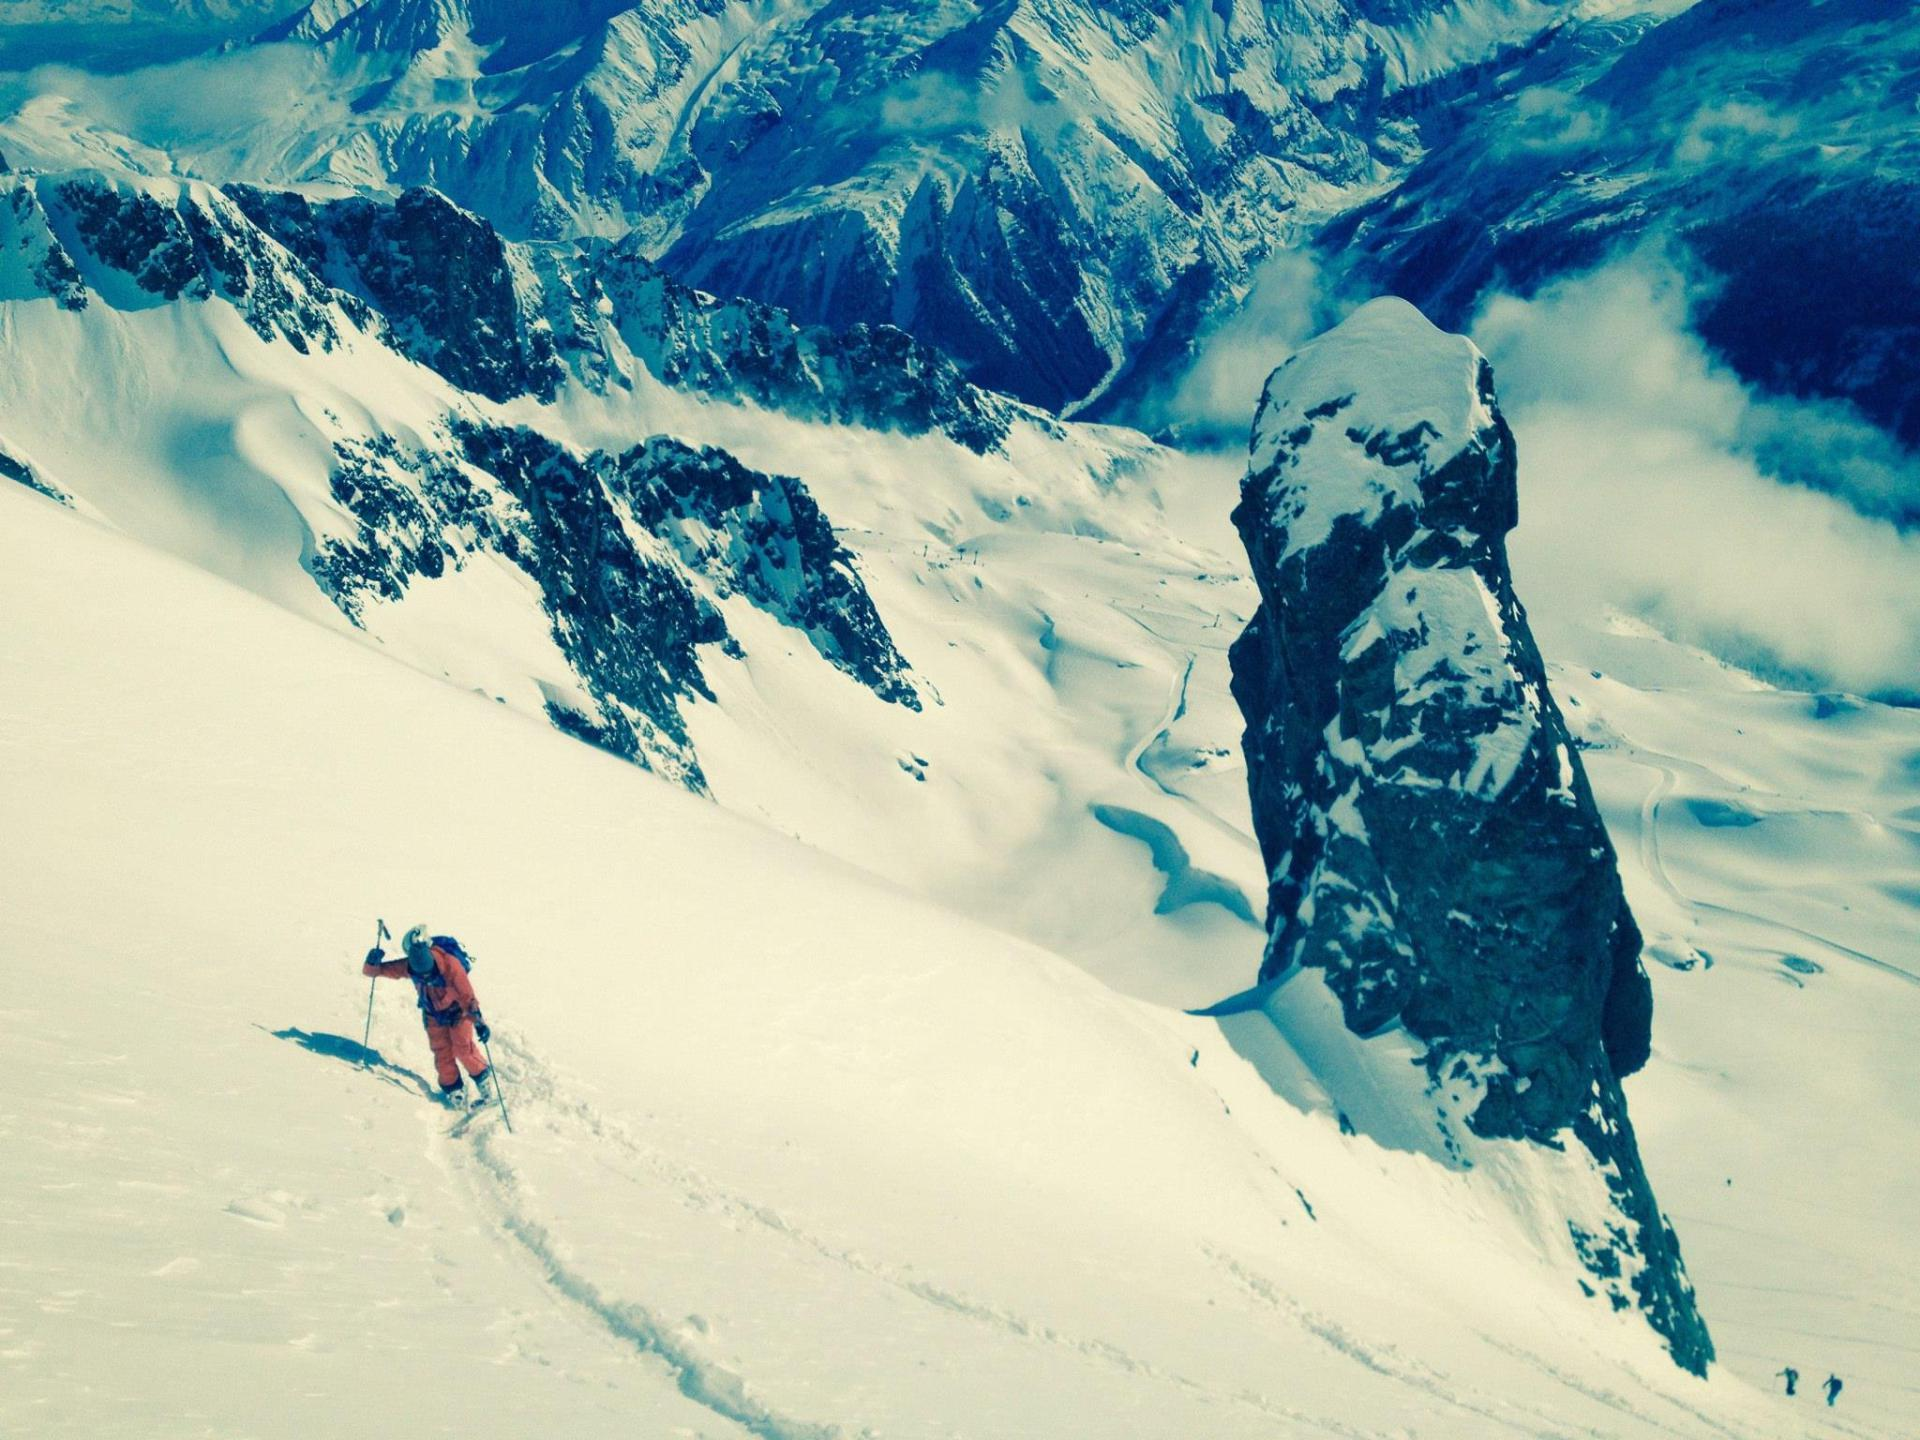 Ski touring in Chamonix Brevent is amazing